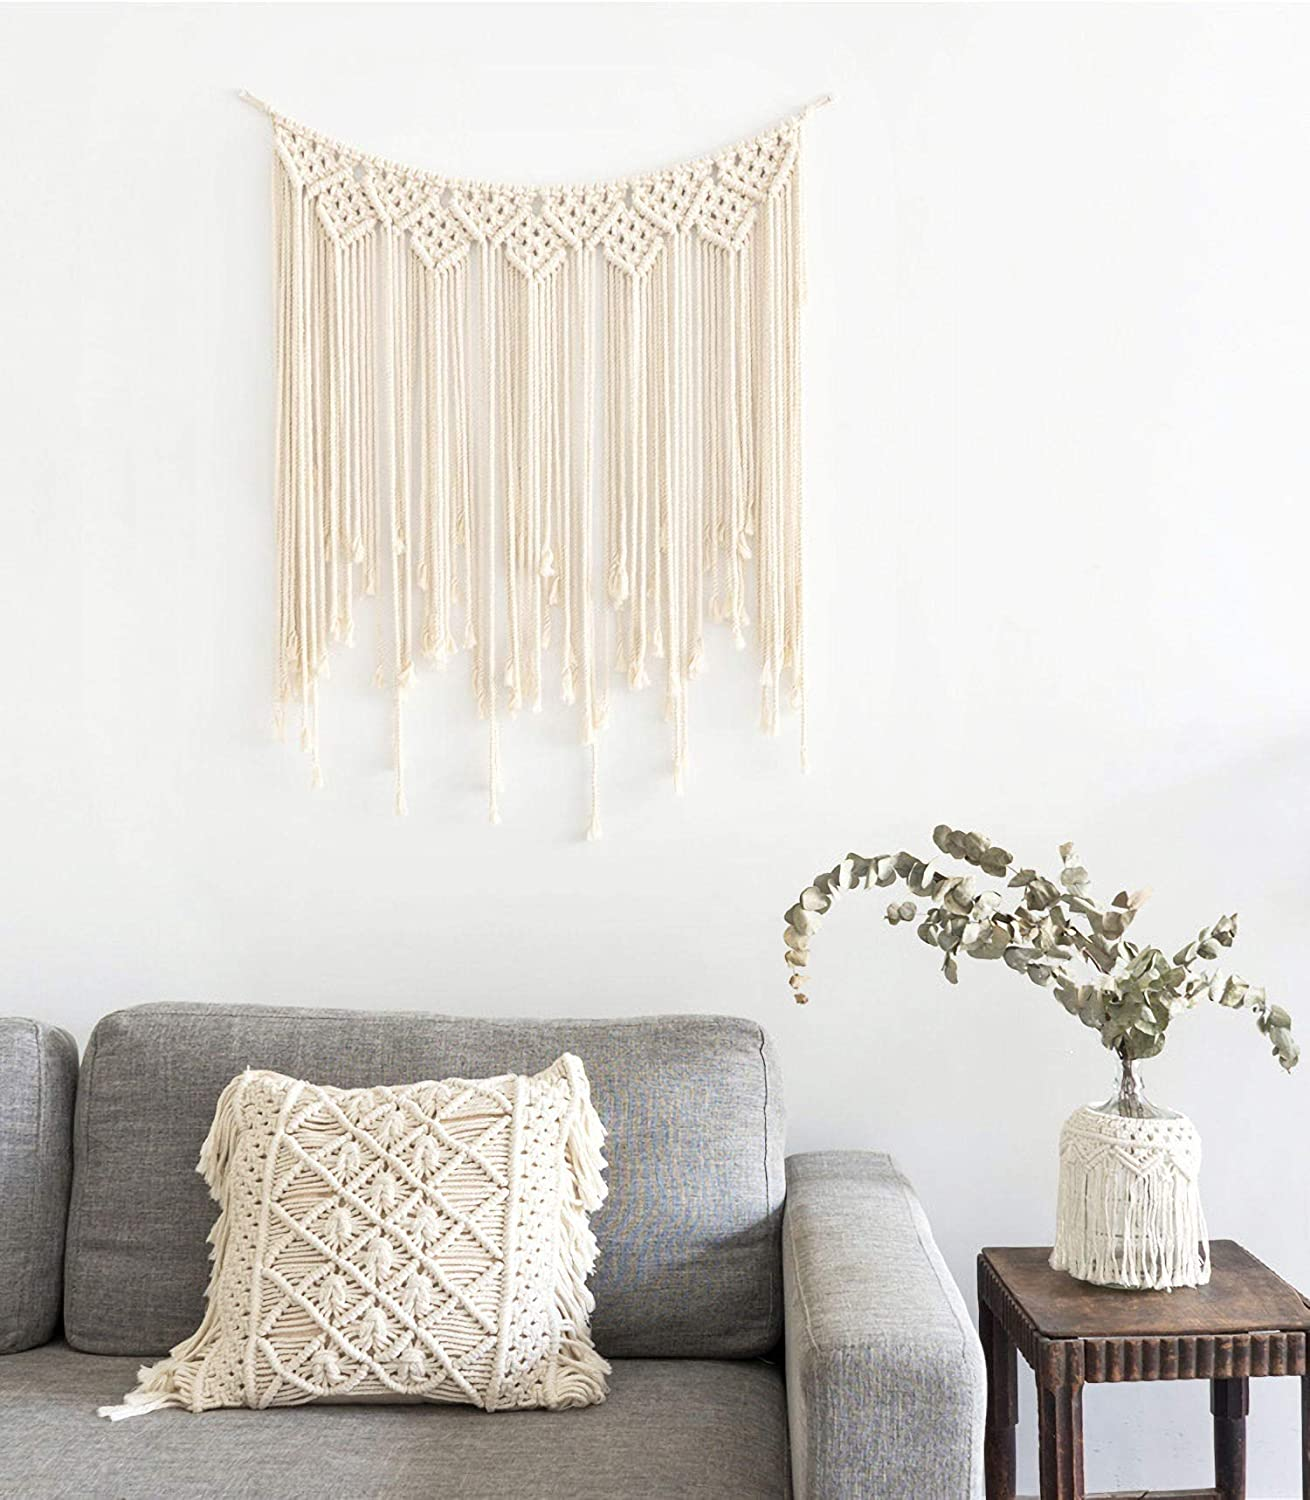 Macrame Wall Hanging Woven Tapestry - Bohemian Home Decor for Apartment Bedroom Living Room Baby Nursery, 42